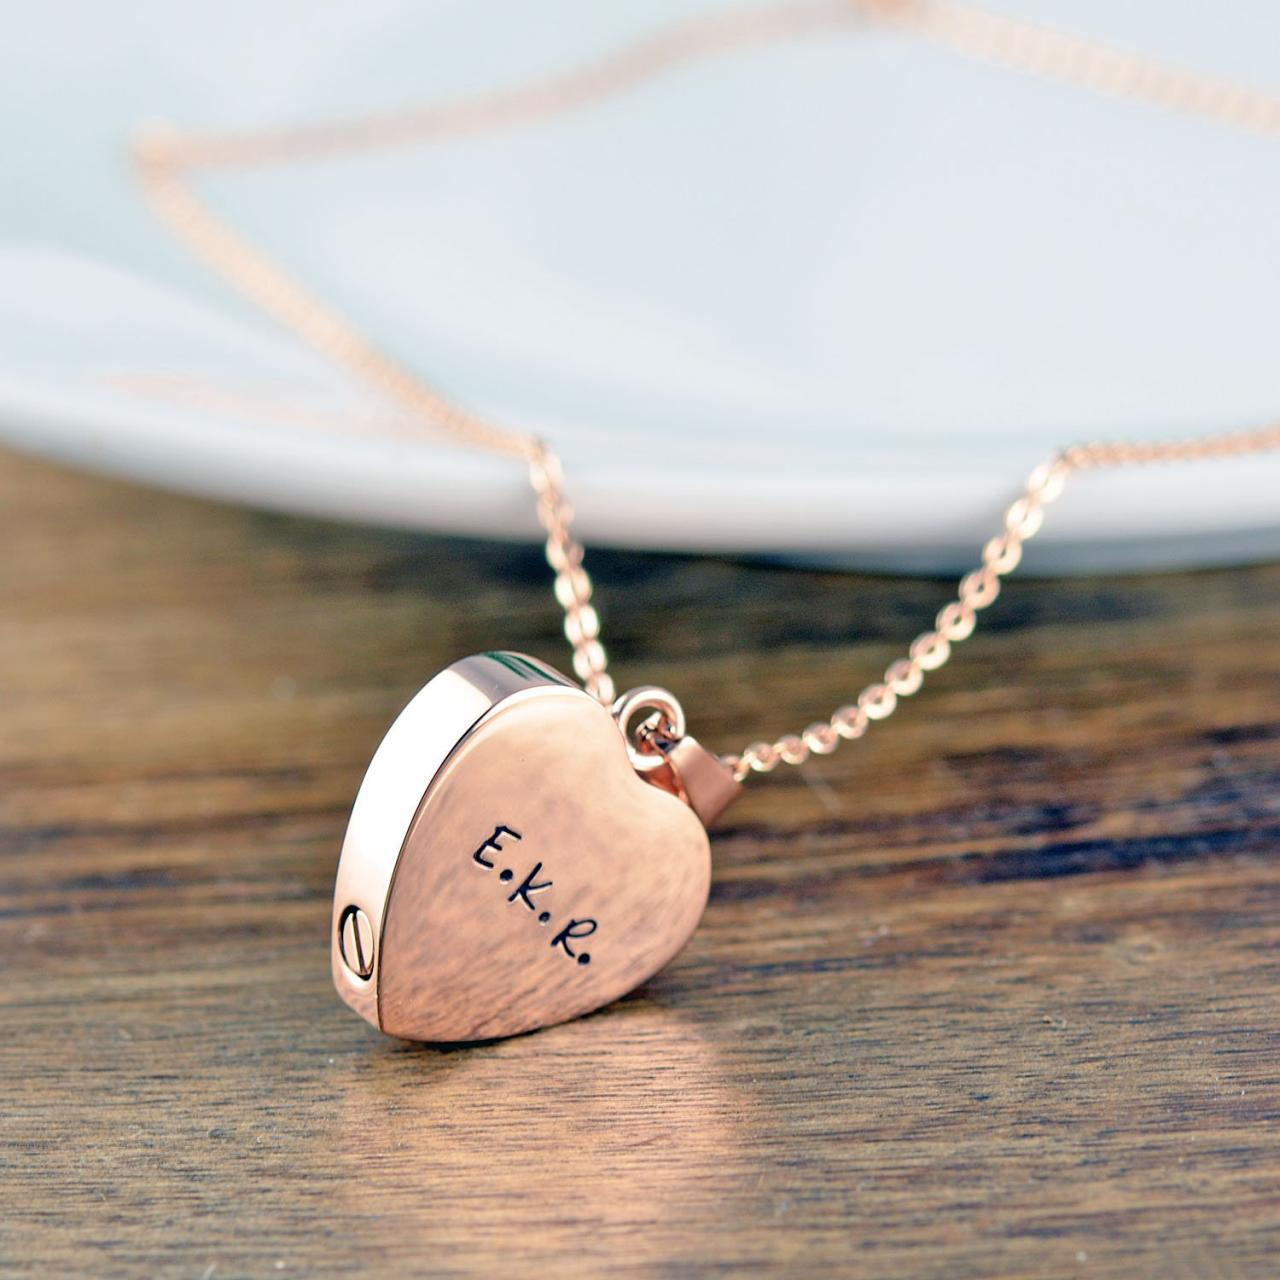 Rose Gold Heart, Personalized Cremation Jewelry, Ash Jewelry, Heart Cremation Pendant, Urn Necklace For Ashes, Cremation Necklace, Memorial